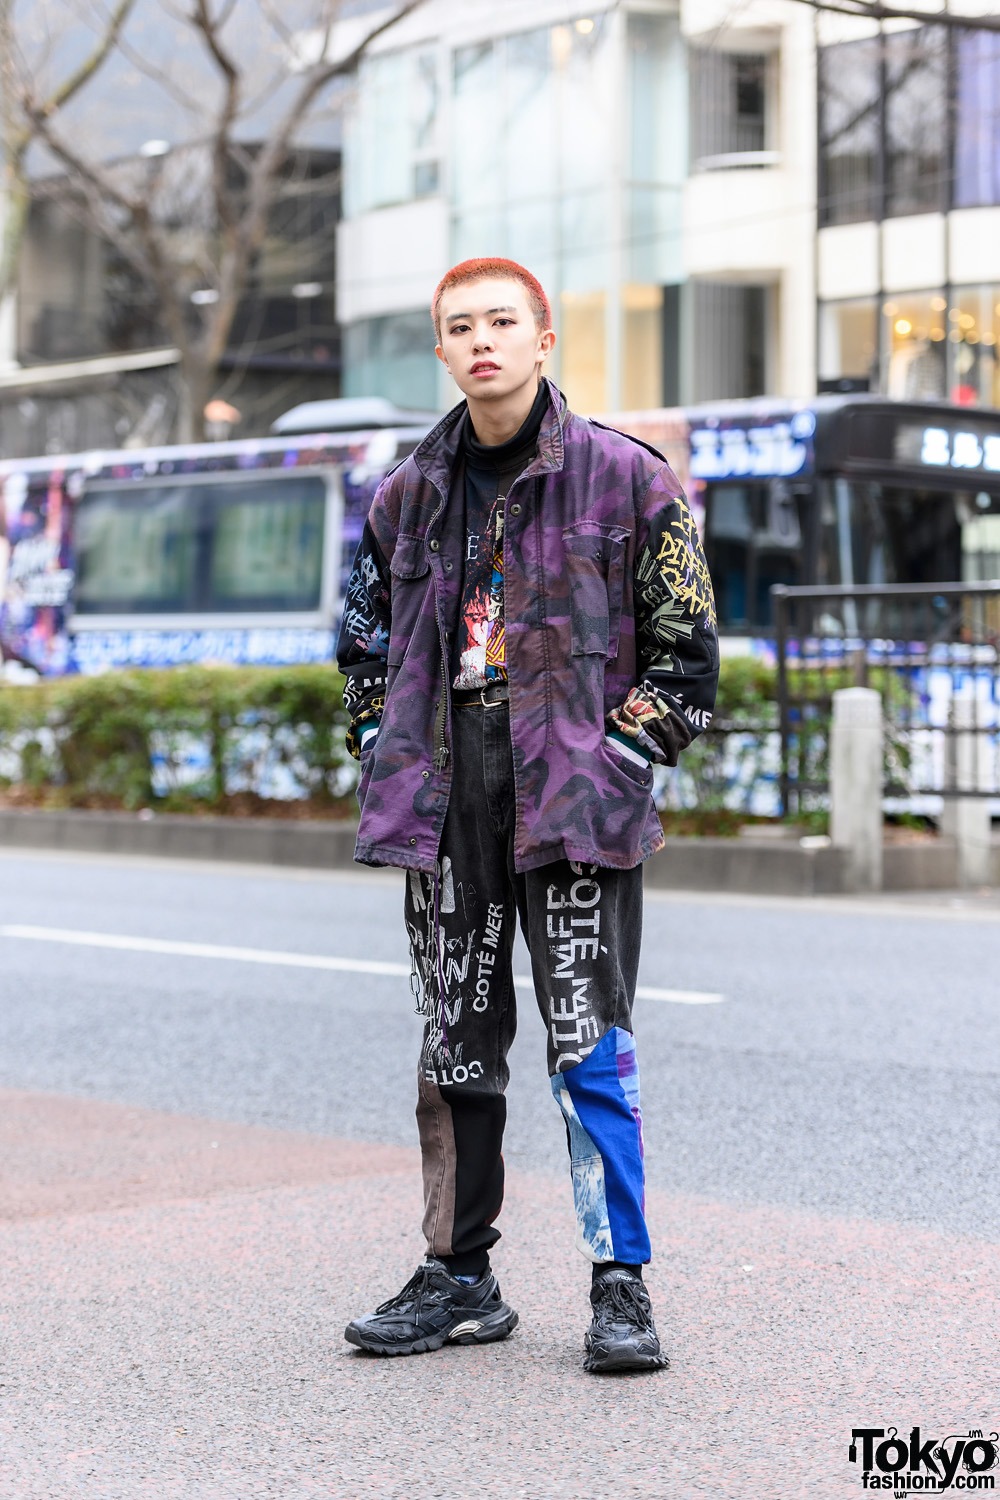 Japanese Model's Cote Mer Graphic Street Style w/ Pink Shaved Hair, Camouflage Jacket, Half Print Shirt, Graphic Pants, (ME) Harajuku & Balenciaga Sneakers